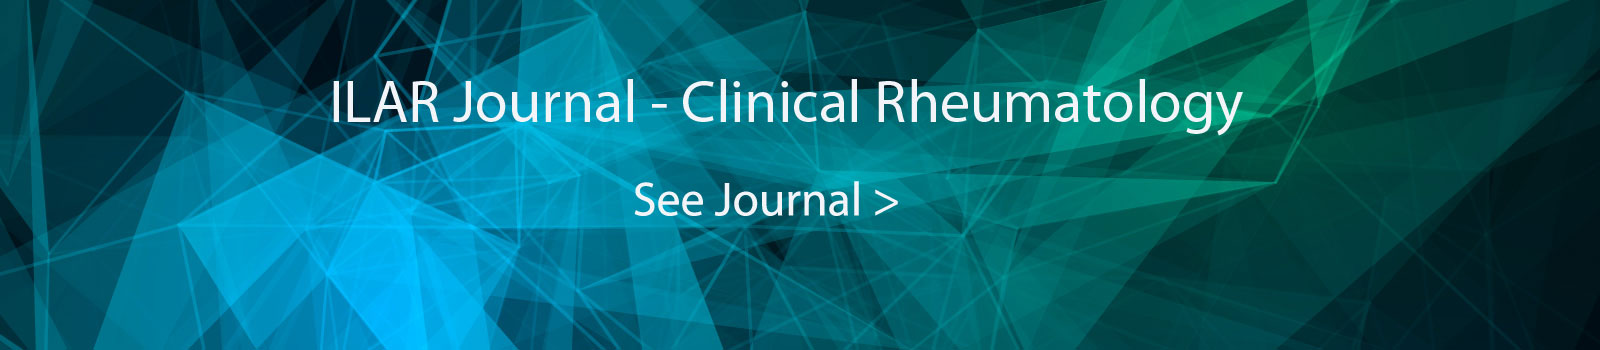 ILAR journal Clinical Rheumatology